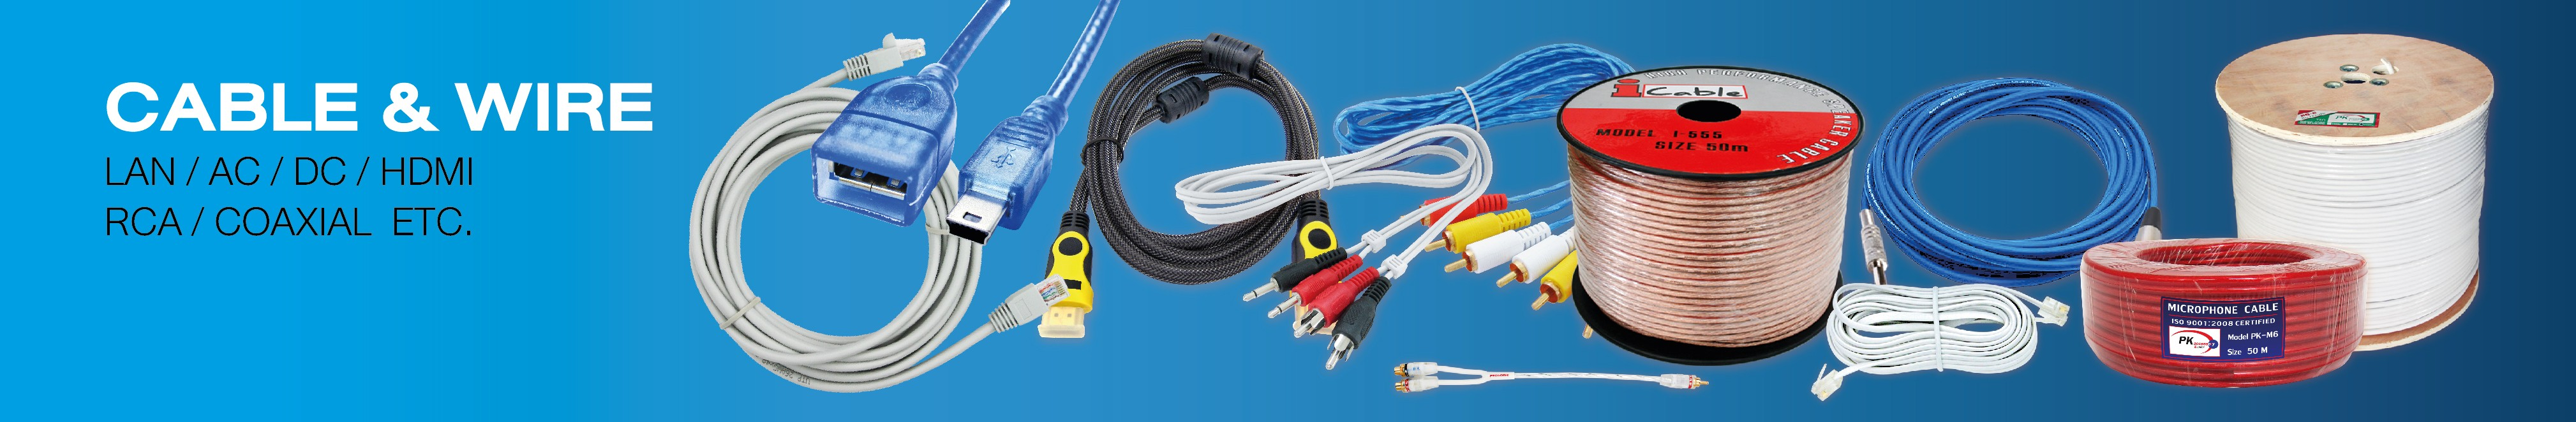 cable&wire